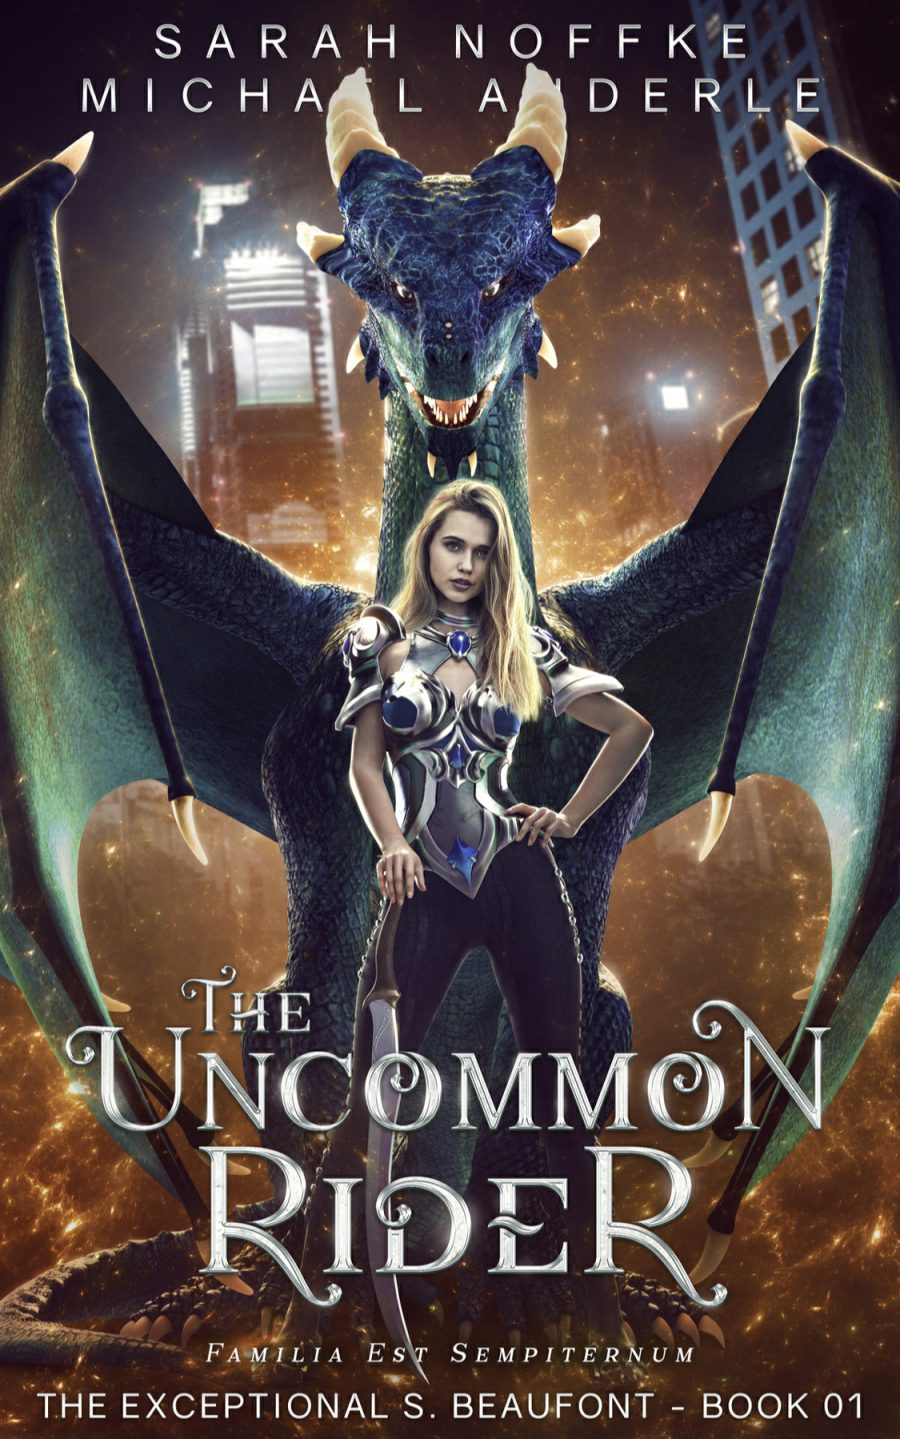 The Uncommon Rider by Sarah Noffke & Micheal Anderle - A Book Review #BookReview #YA #HighFantasy #4Stars #KindleUnlimited #KU